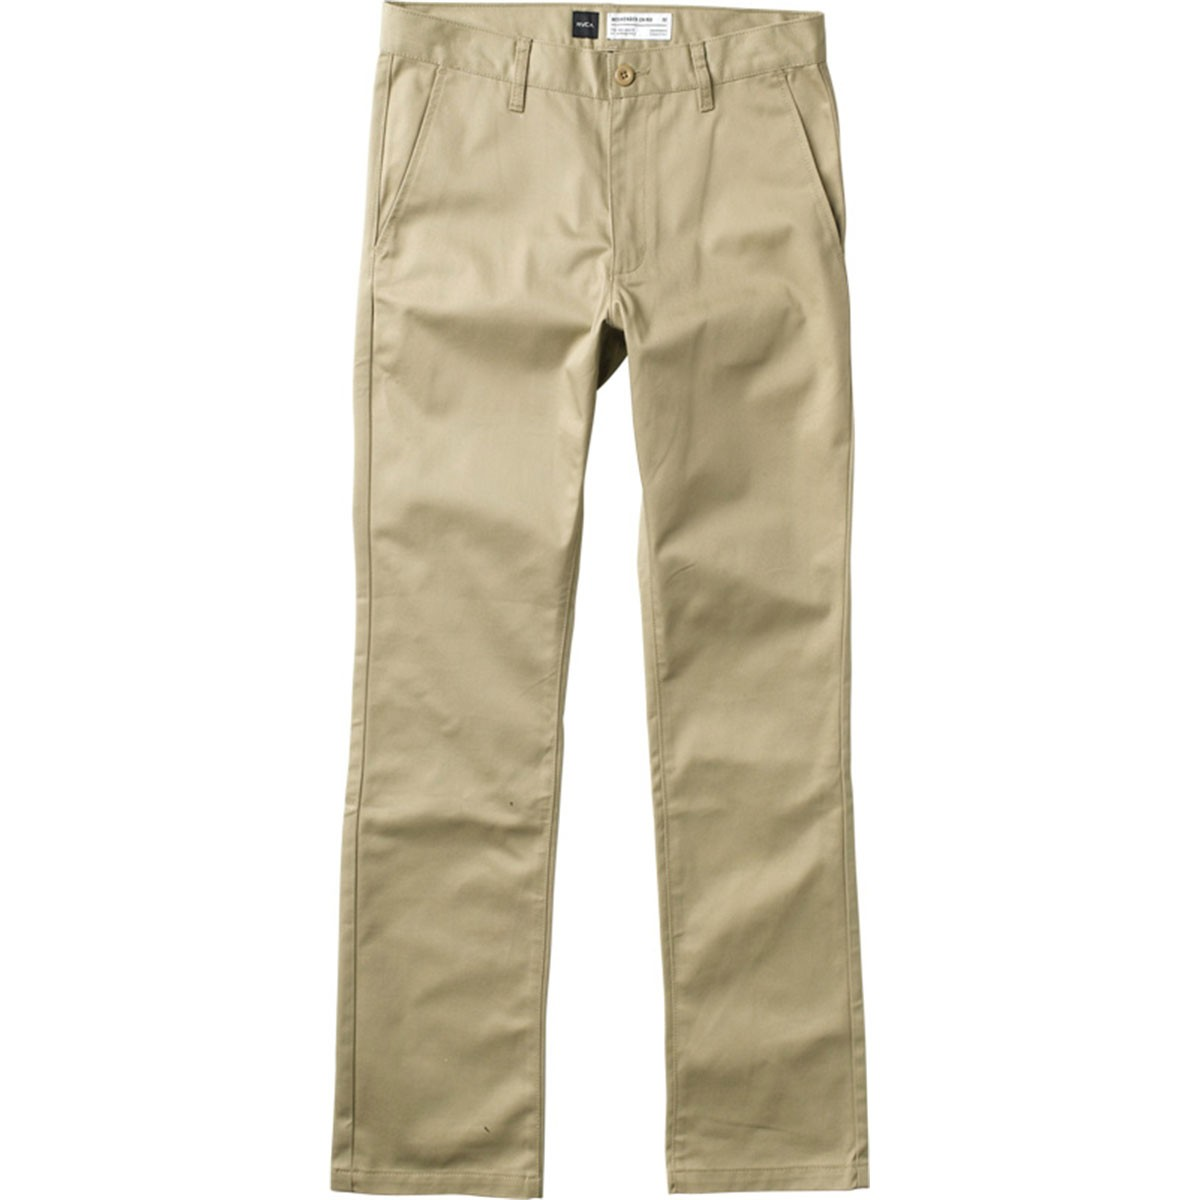 RVCA Weekday Pants - Khaki